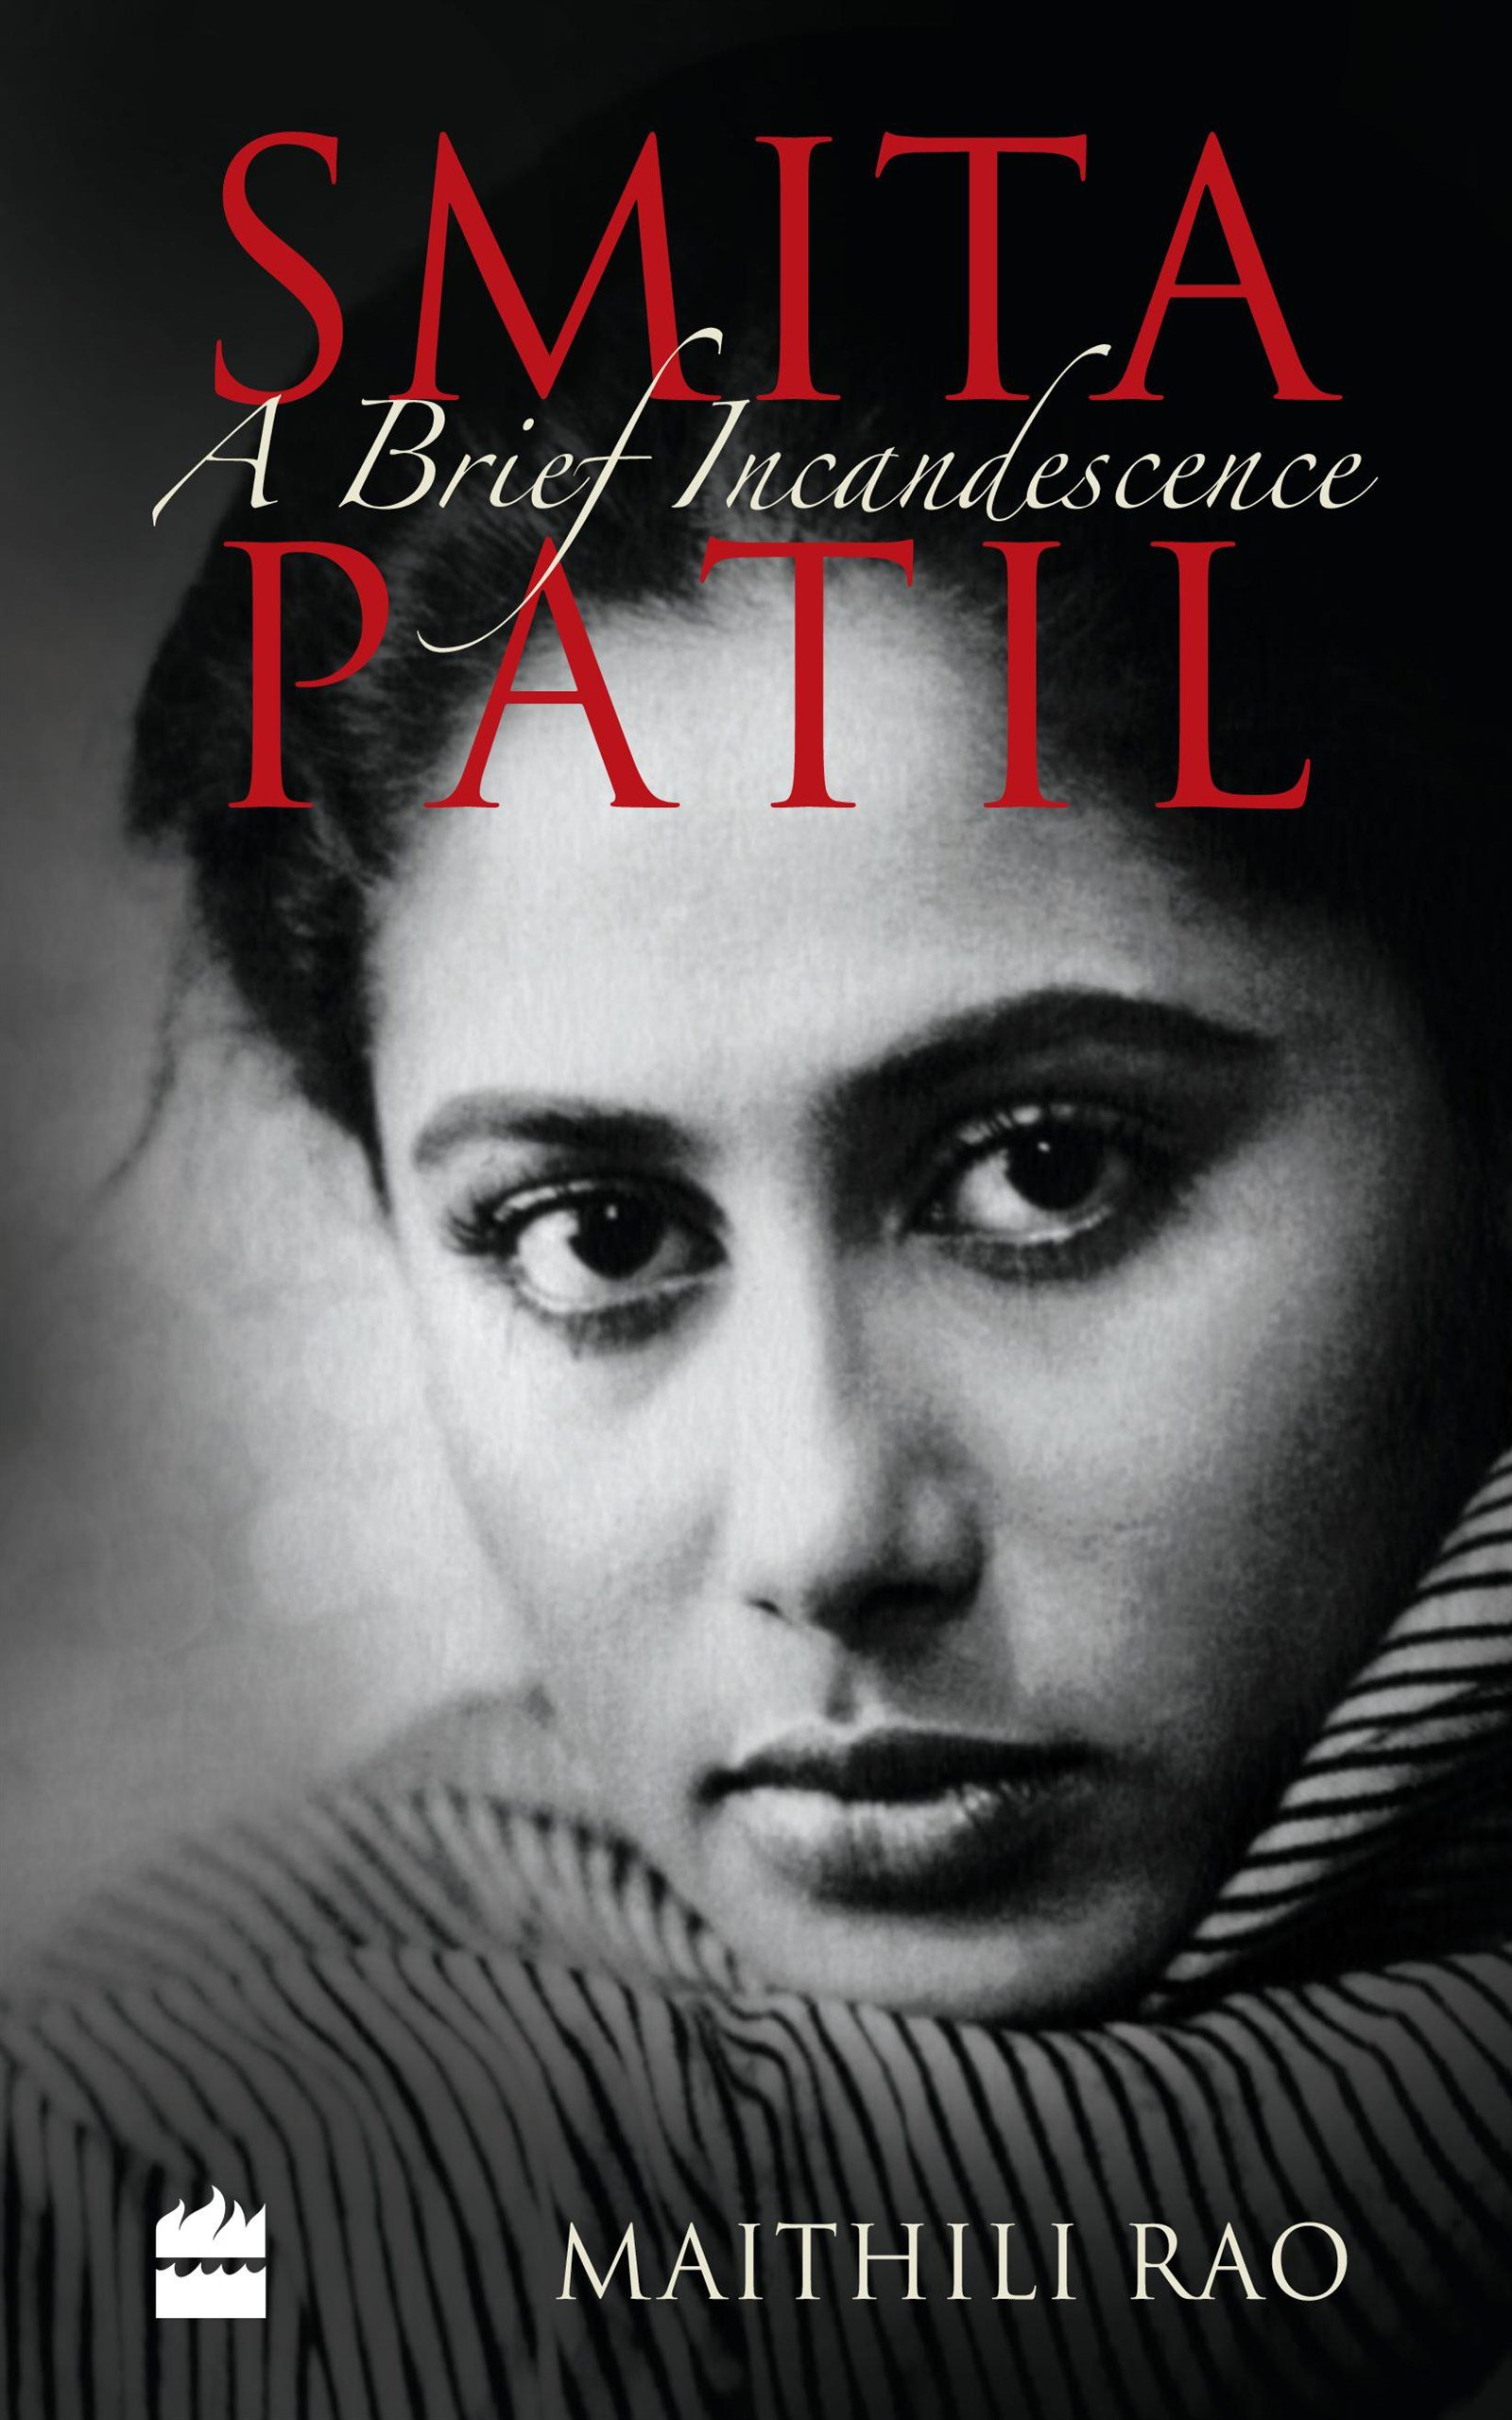 Smita Patil: A Brief Incandescence: Amazon.es: Maithili Rao: Libros en idiomas extranjeros